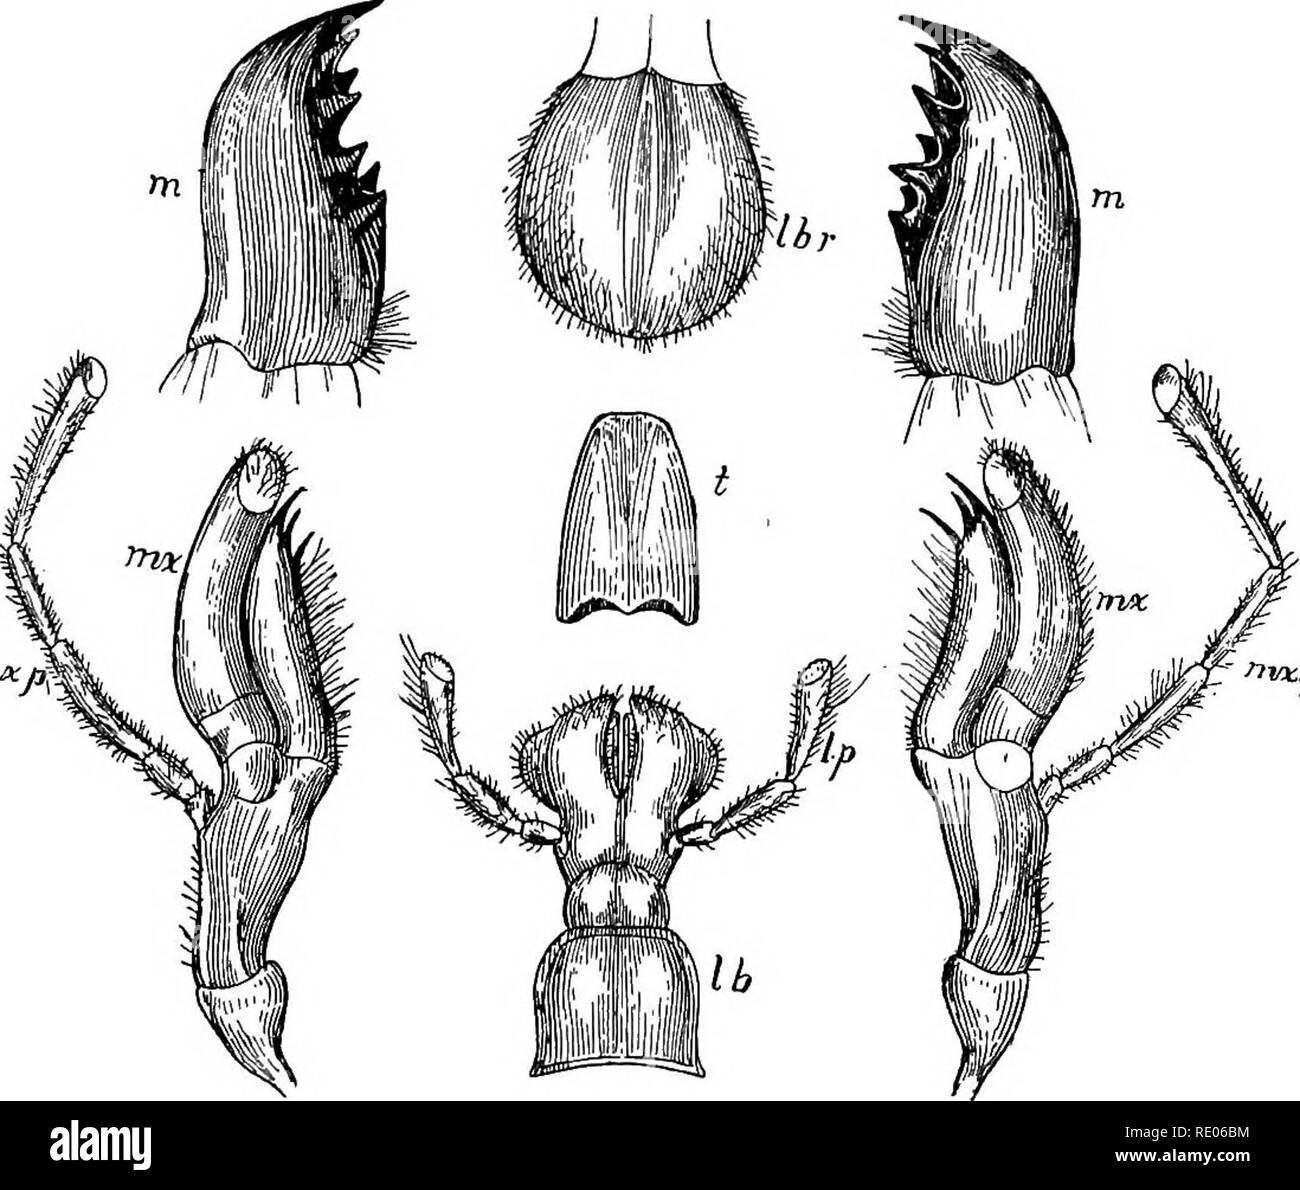 . Outlines of the comparative physiology and morphology of animals. Anatomy, Comparative; Physiology, Comparative. NUTRITION PROPER. 333 divided and masticated by the jaws working toward one another laterally (not vertically, as in vertebrates).. m*fi nvx.p Fig. 213.—The mouth parts of a grasshopper enlarged : Ibr, labrum ; m m, mandibles ; lb, labium ; Ip, labial palpi; /, tongue ; mx mx, maxilla?; mxp mxp, maxillary palpi. Serial Homology of these Parts.—As already said (page 273), the insect head consists of four segments with their paired appendages. The labrum is an exten- sion downward o - Stock Image